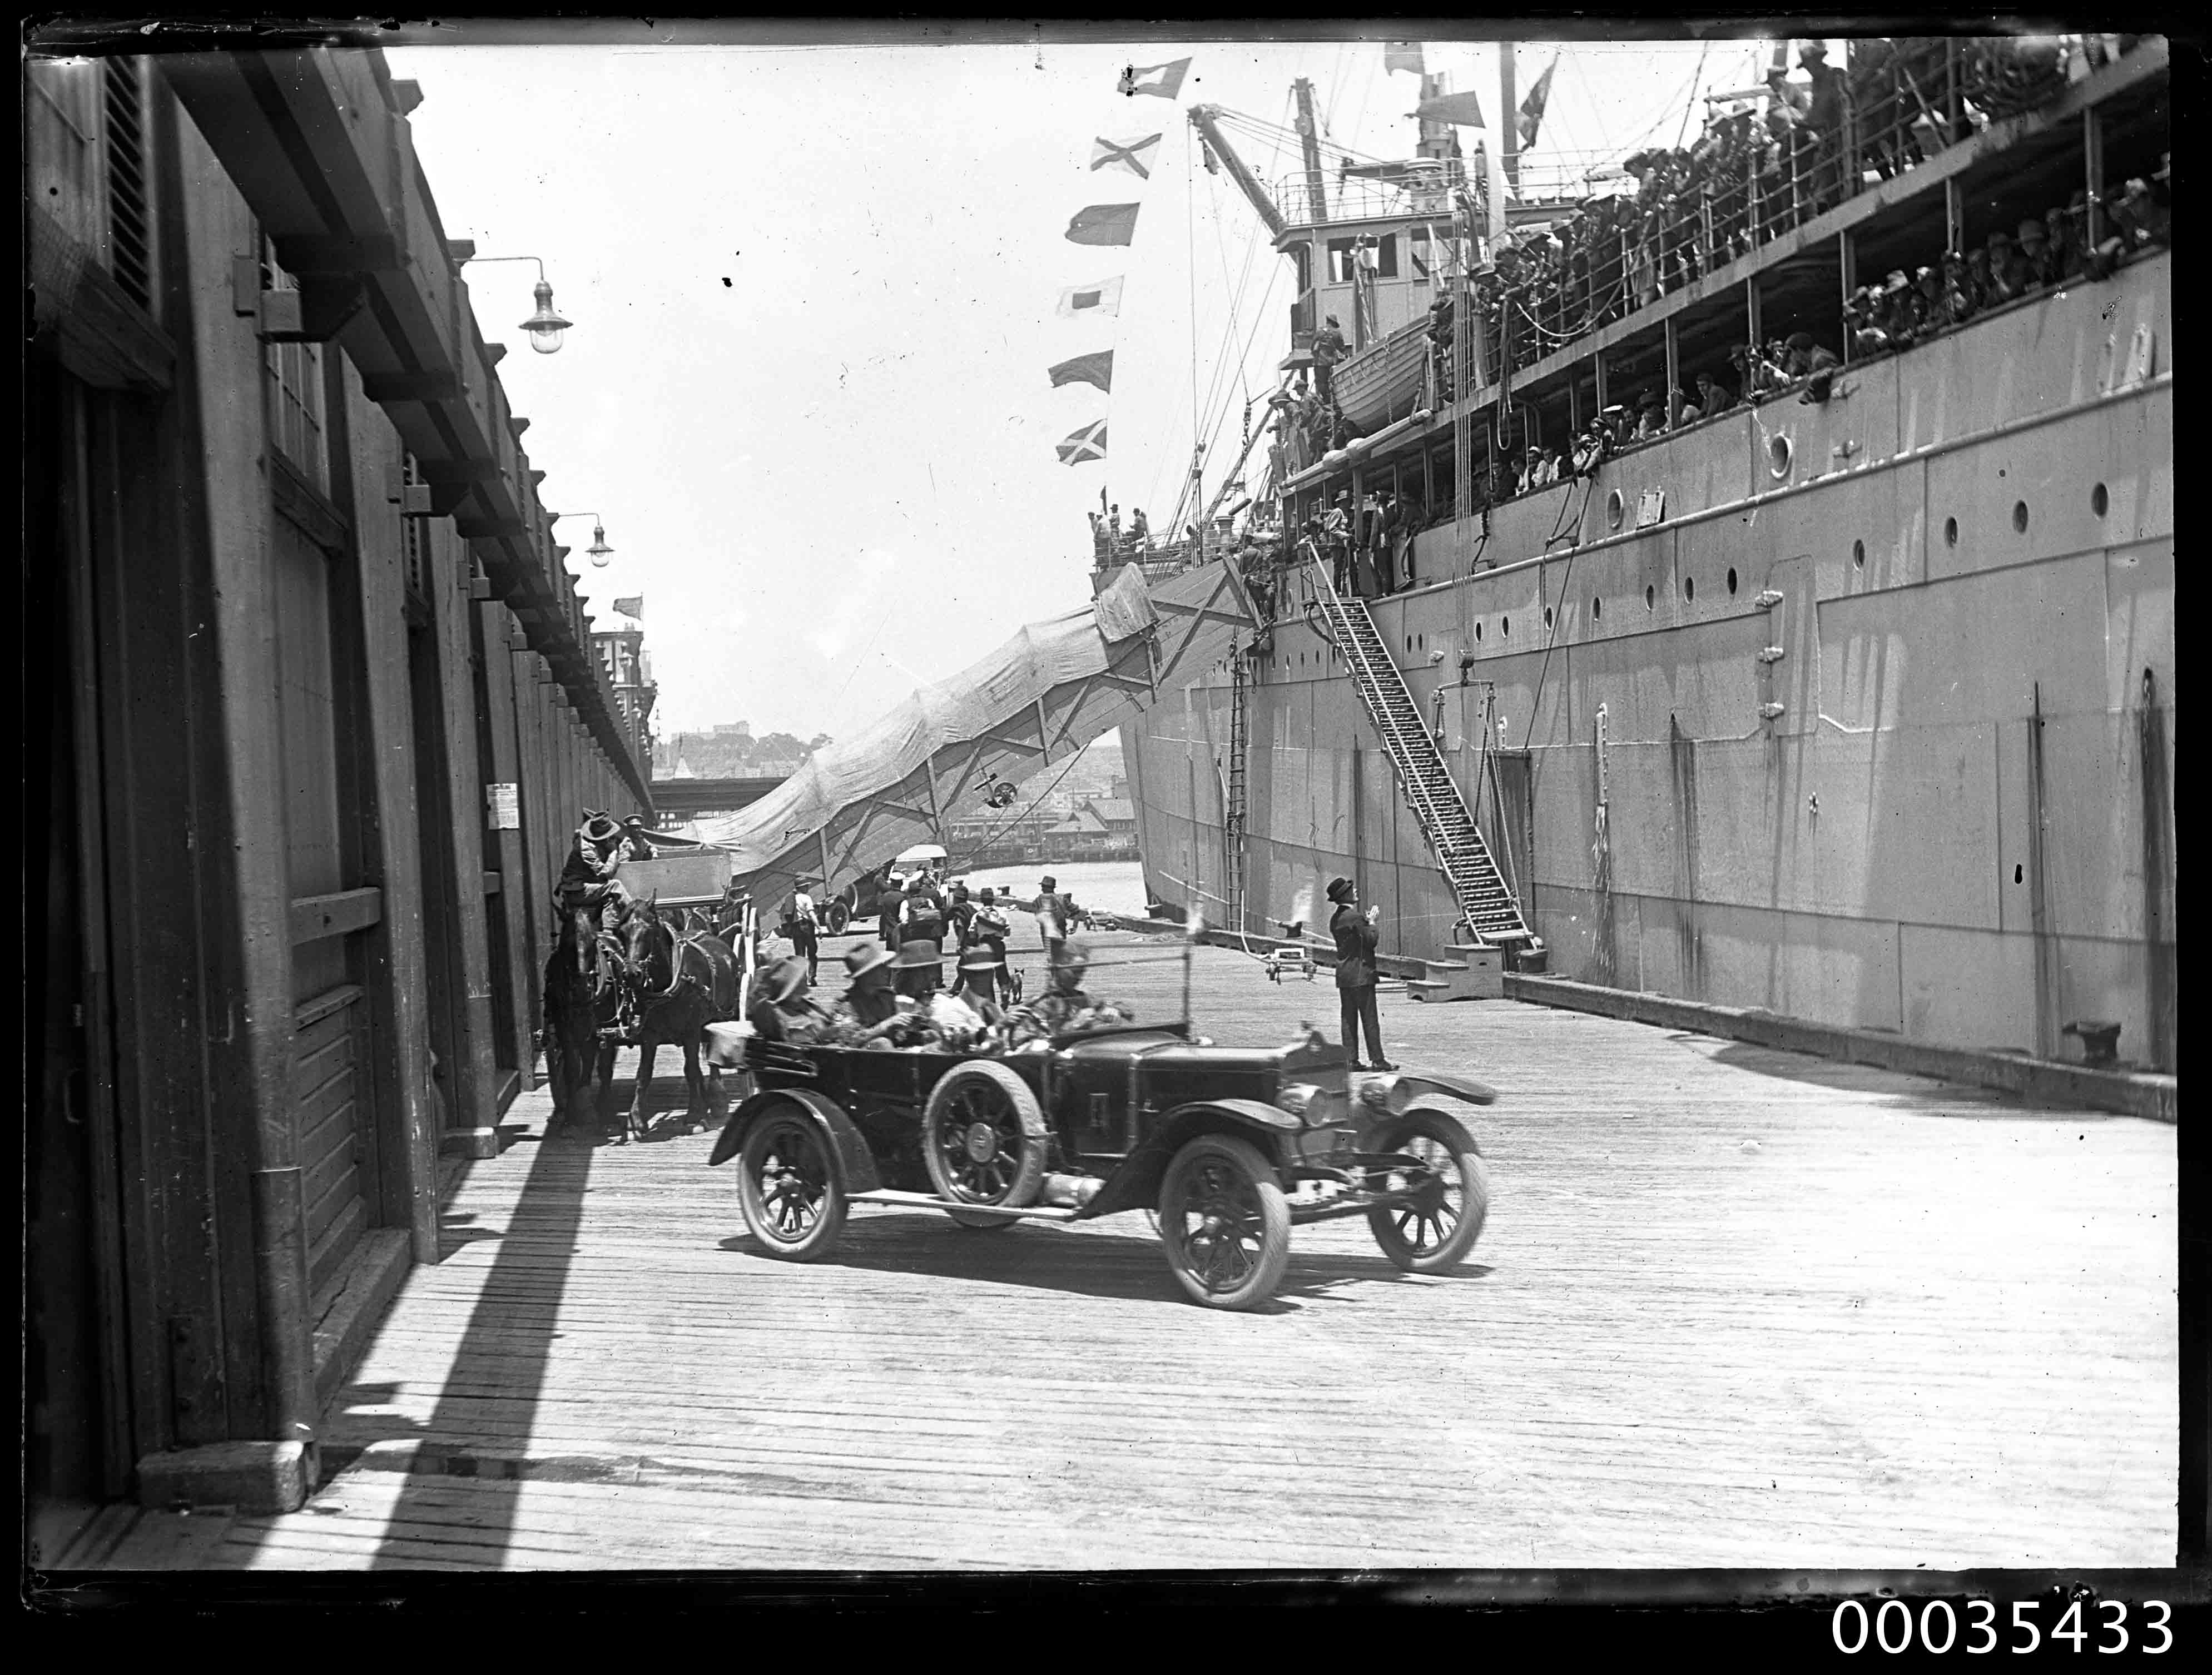 Partial view of a passenger ship docked at a wharf possibly in Sydney